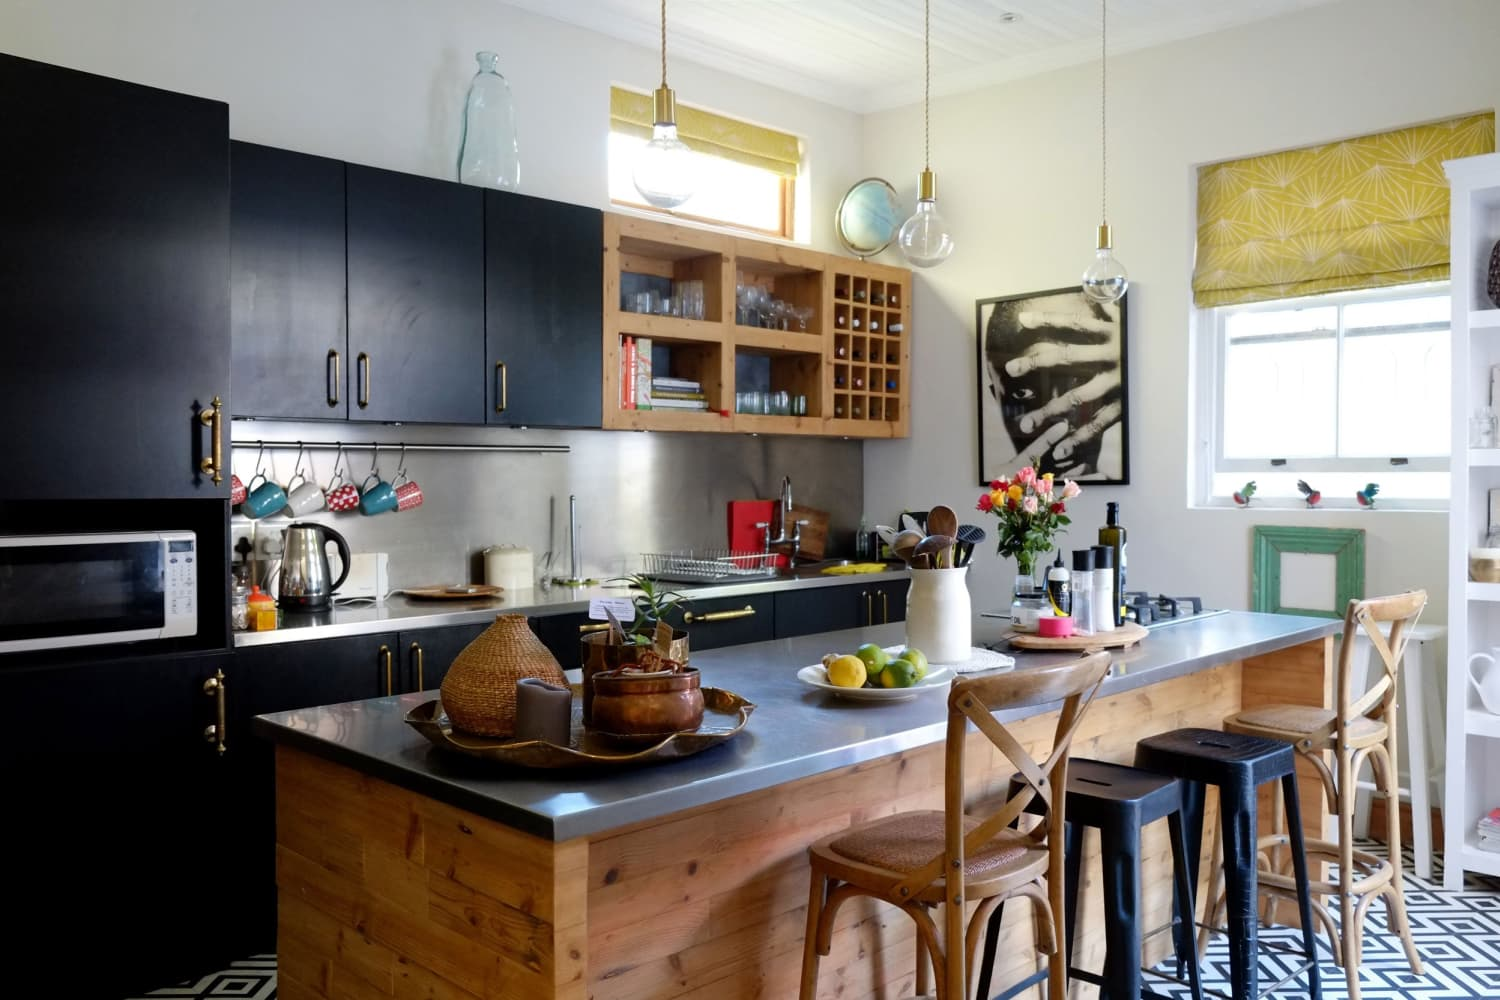 6 Upgrades to Turn Your Kitchen Island into an Island Getaway